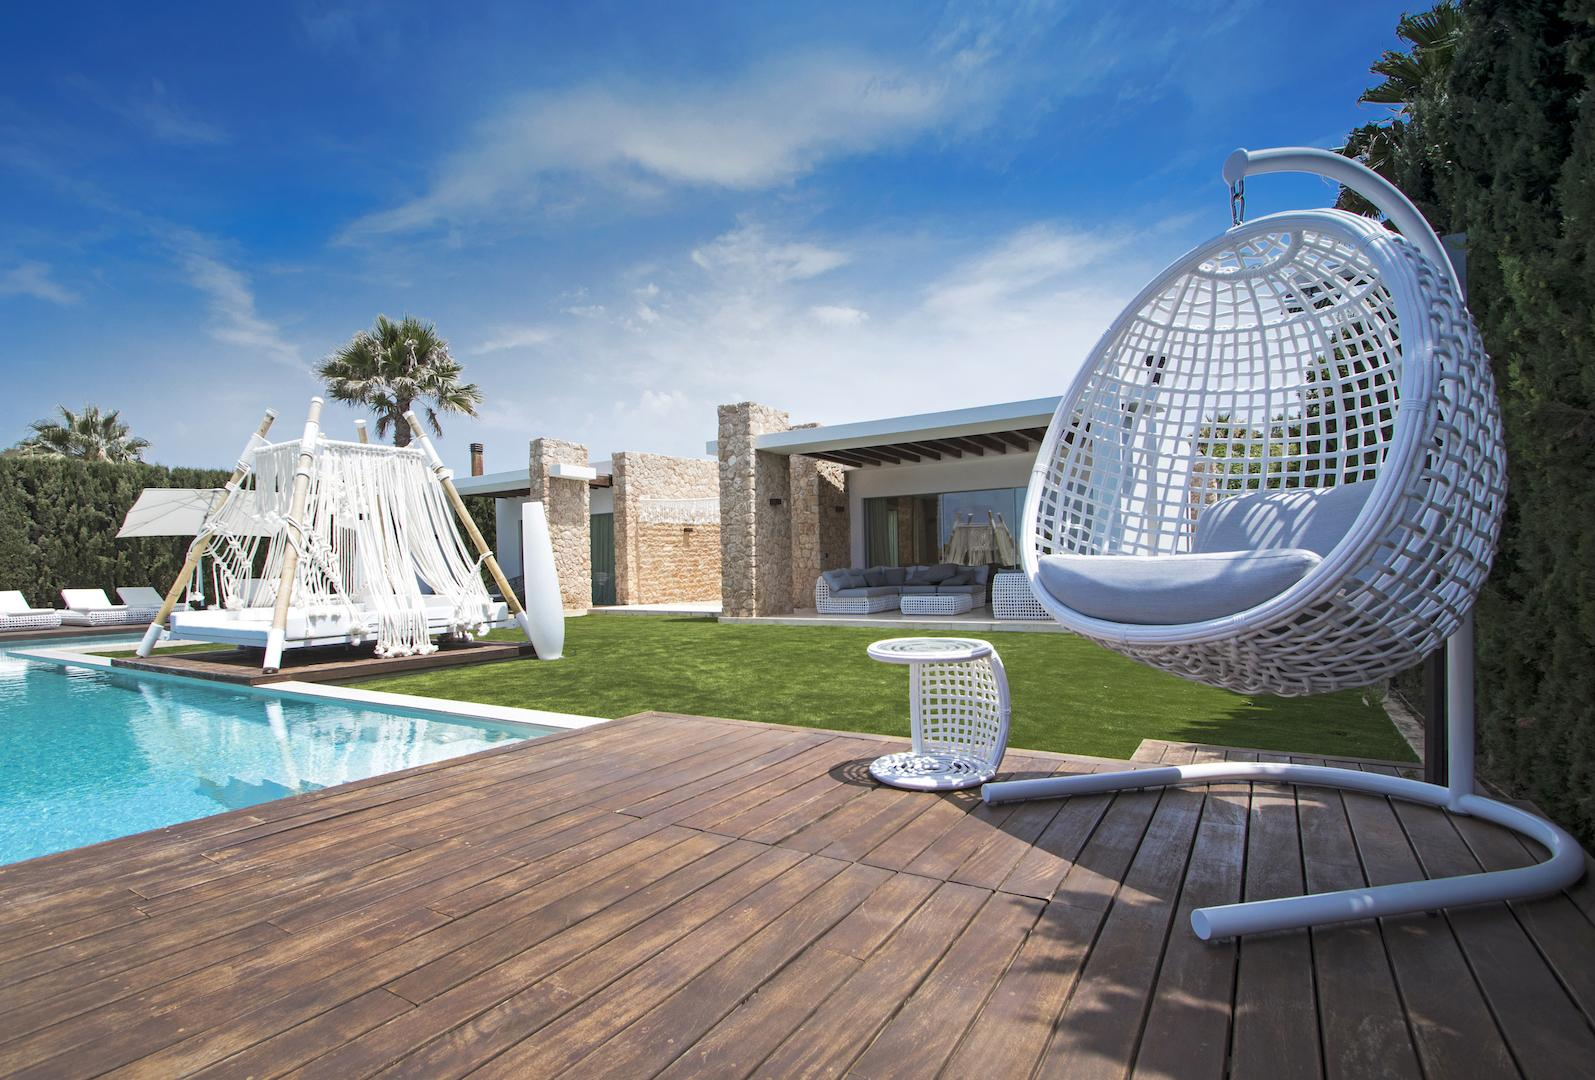 Holiday luxury villa with swimming pool in Ibiza, San Jose, Cala Conta - Villa Mykonos